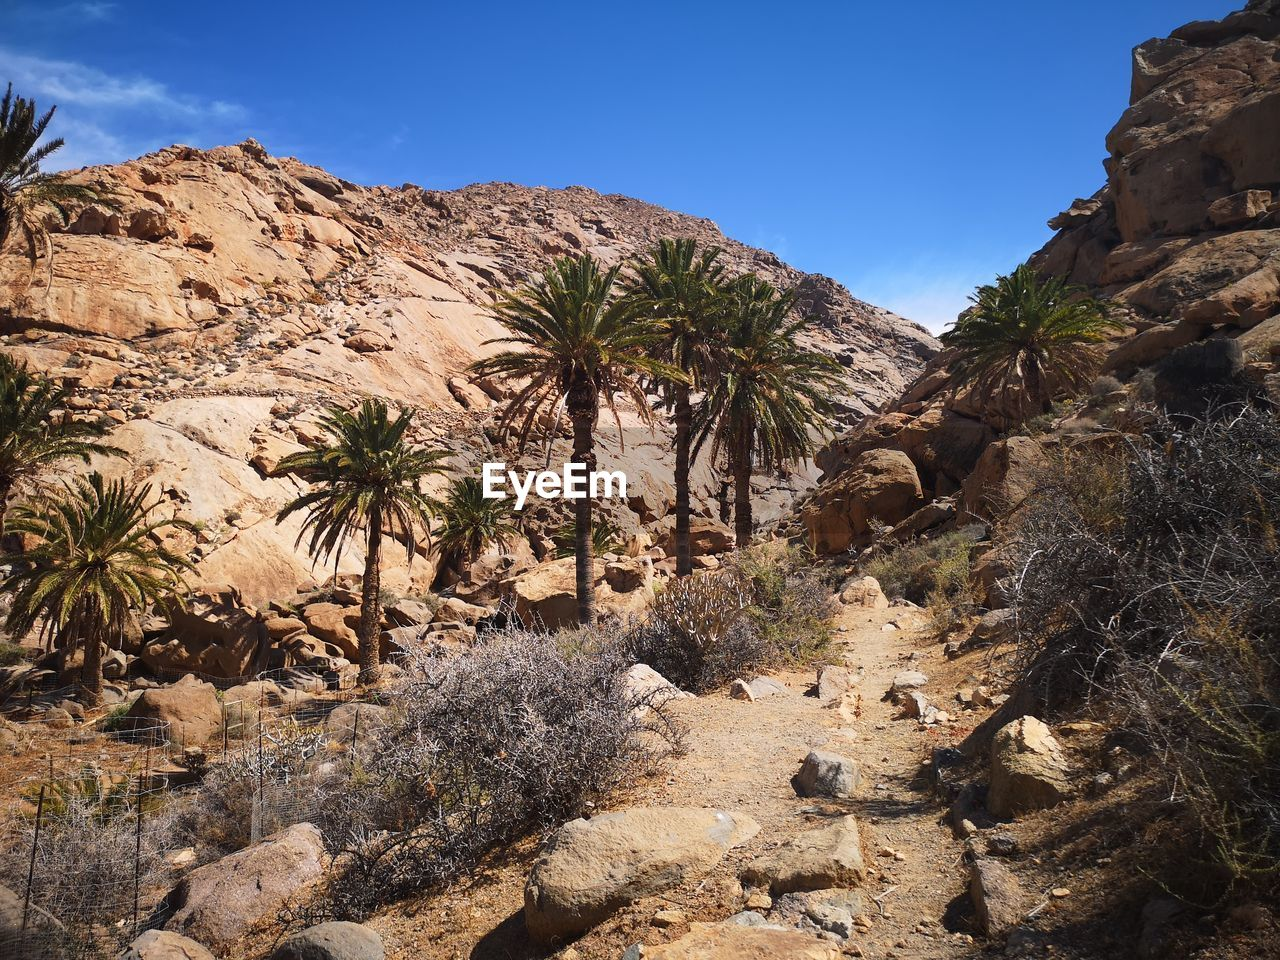 rock, solid, rock - object, sky, plant, rock formation, tree, nature, scenics - nature, tranquility, mountain, beauty in nature, tranquil scene, day, non-urban scene, palm tree, sunlight, physical geography, no people, land, arid climate, outdoors, climate, formation, eroded